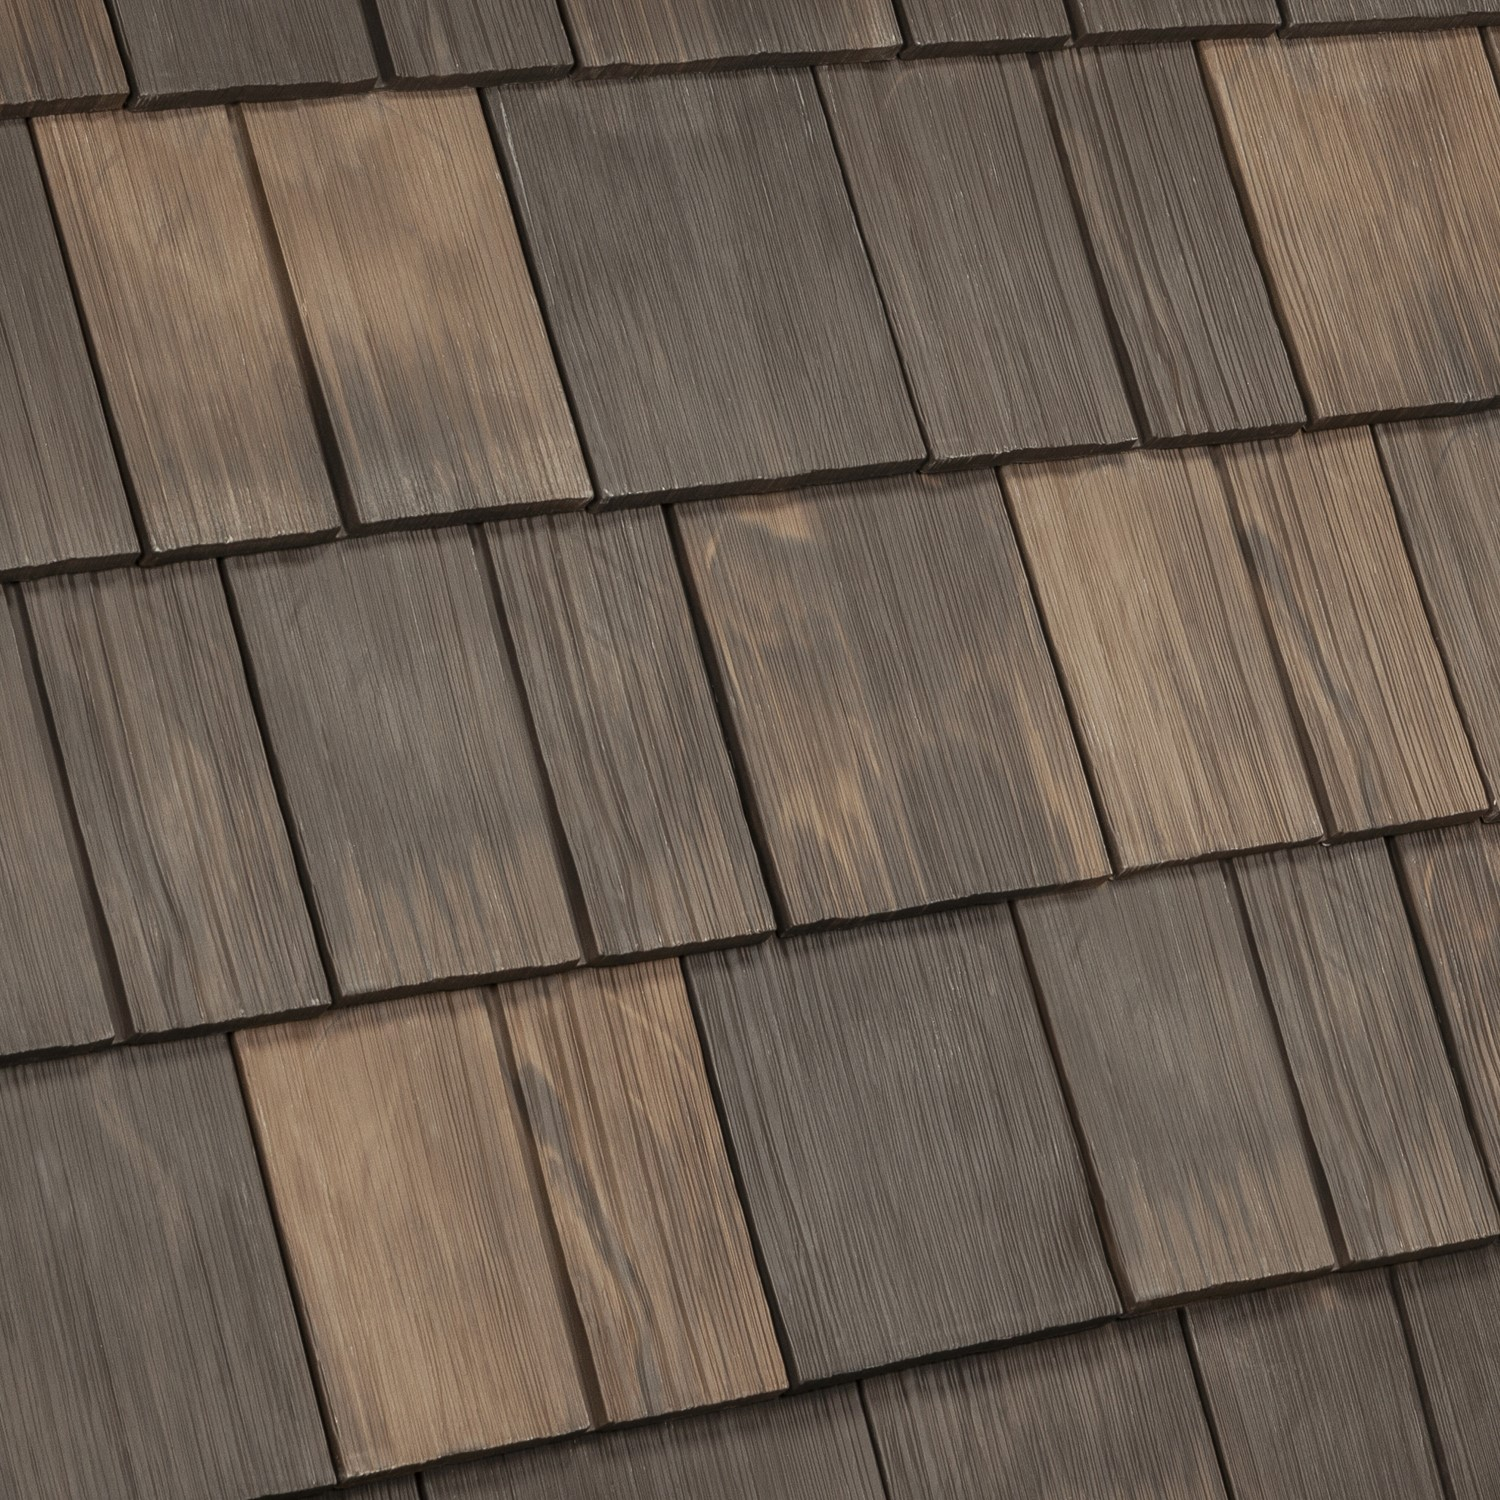 DaVinci Roofscapes Introduces DaVinci Select Shake Roofing